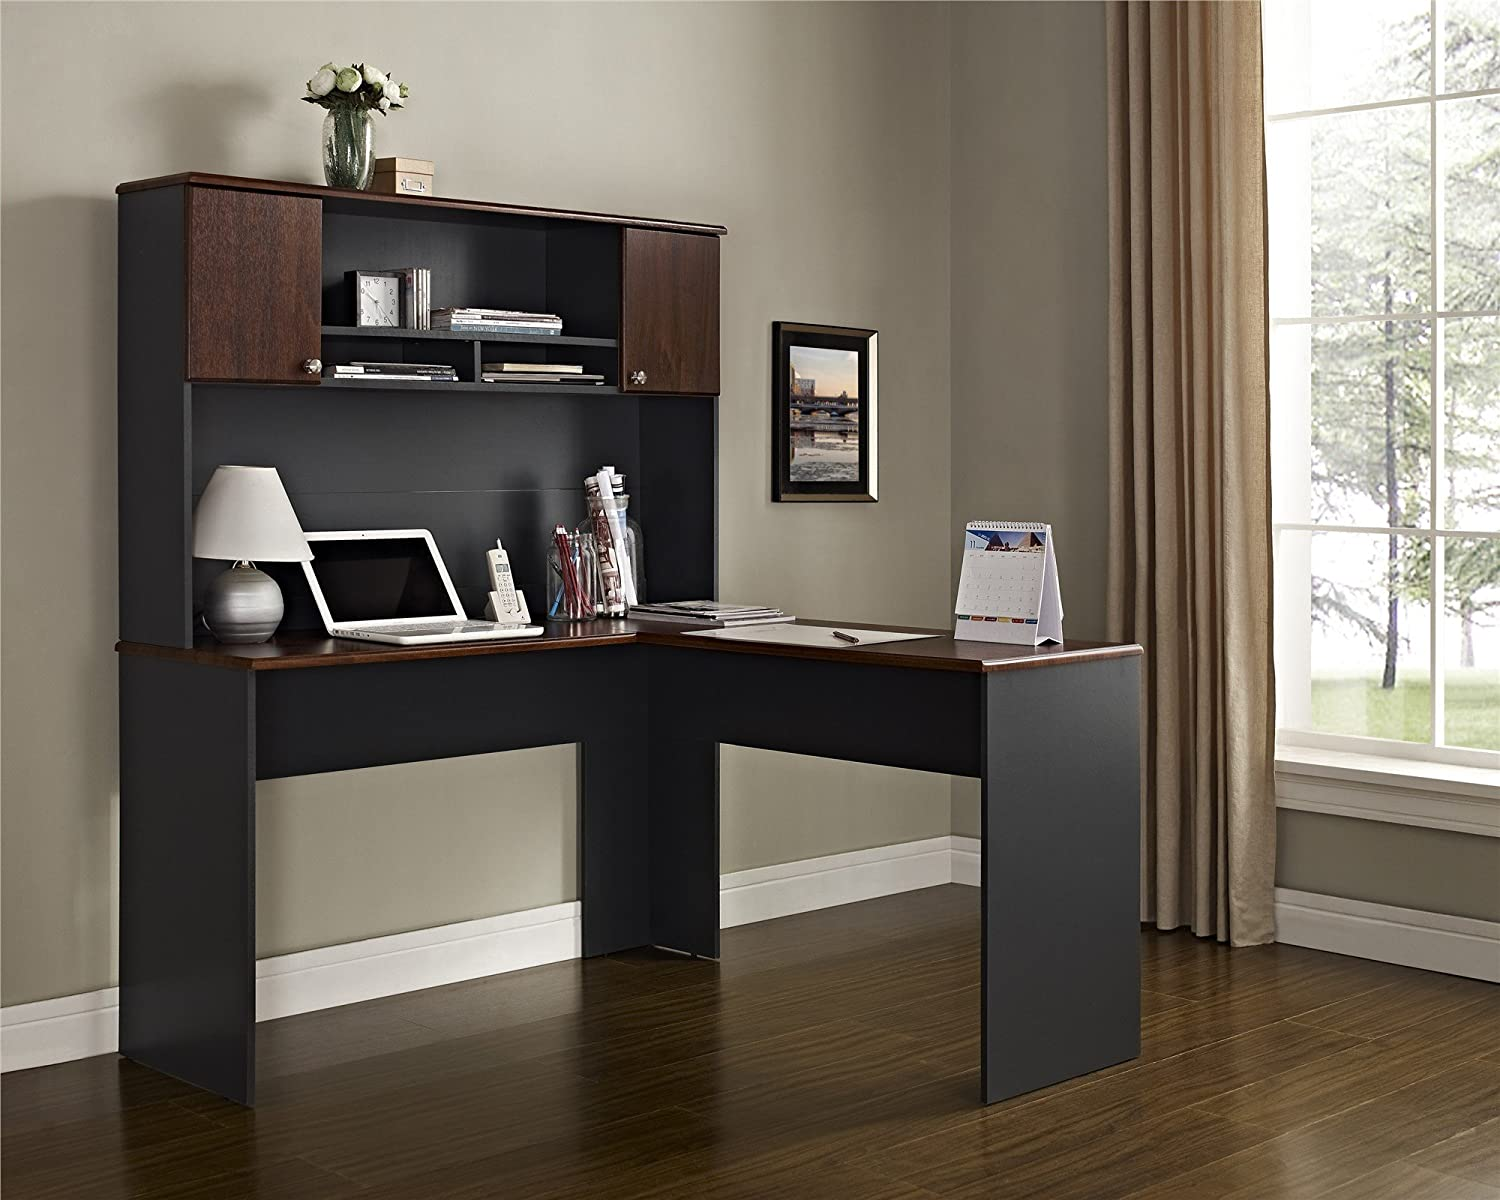 amazoncom ameriwood home the works lshaped desk cherry gray kitchen u0026 dining